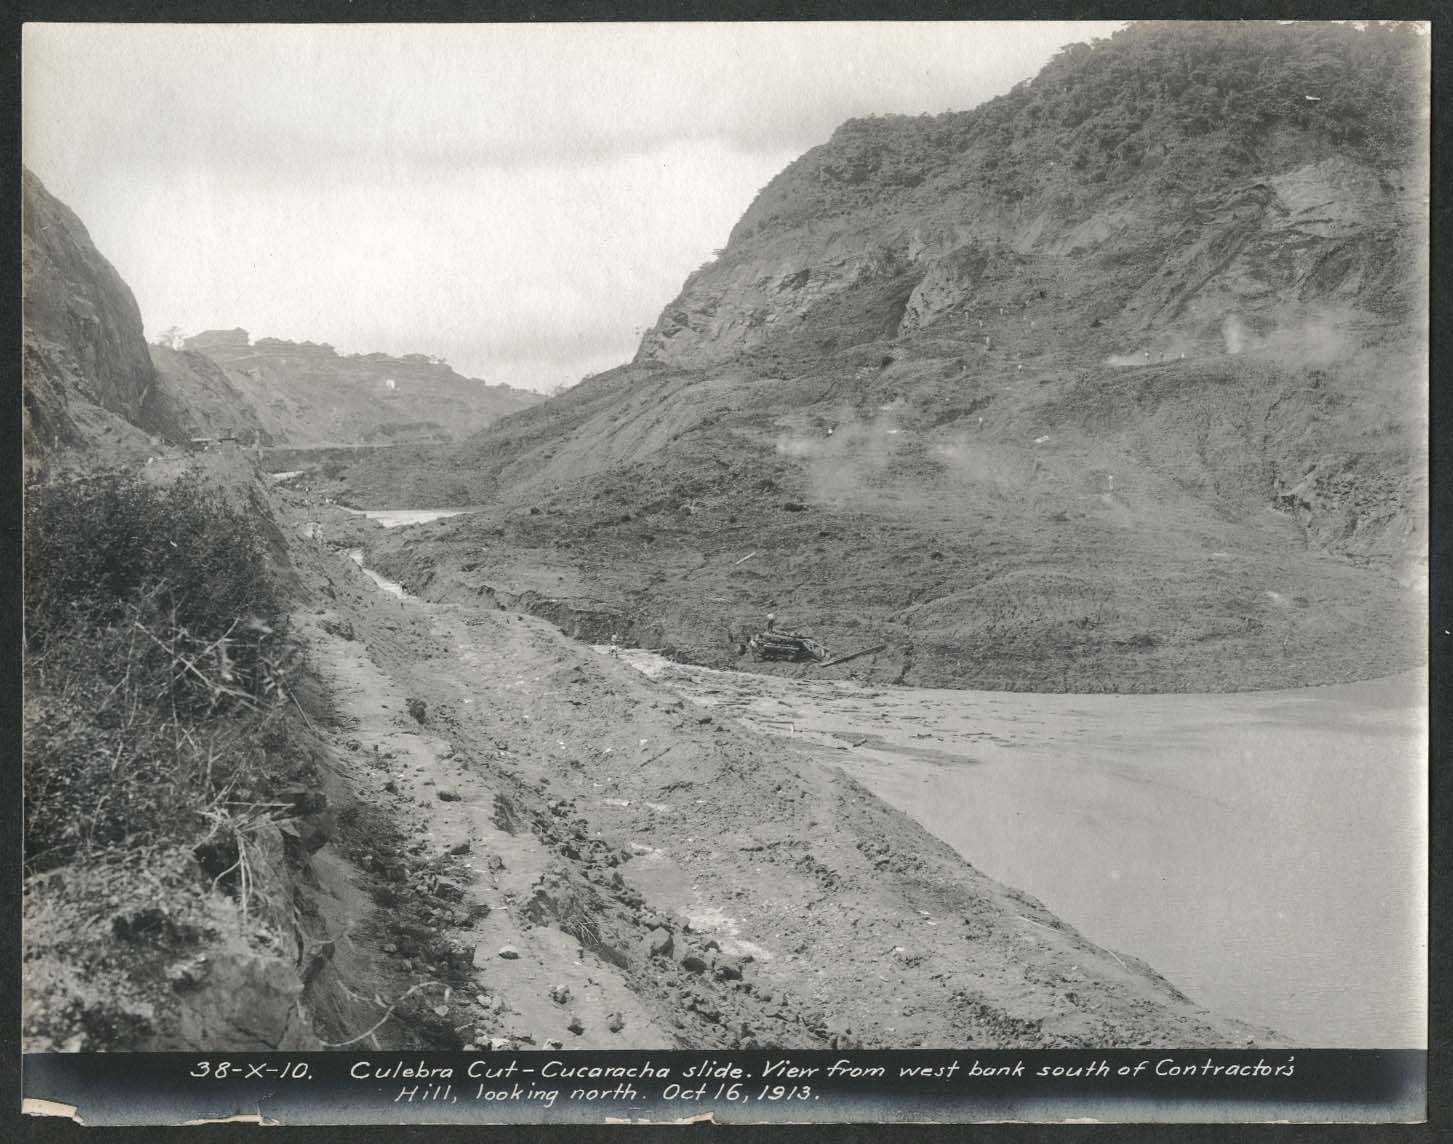 Image for Panama Canal photo 1913 Culebra Cut Cucaracha Slide from west bank